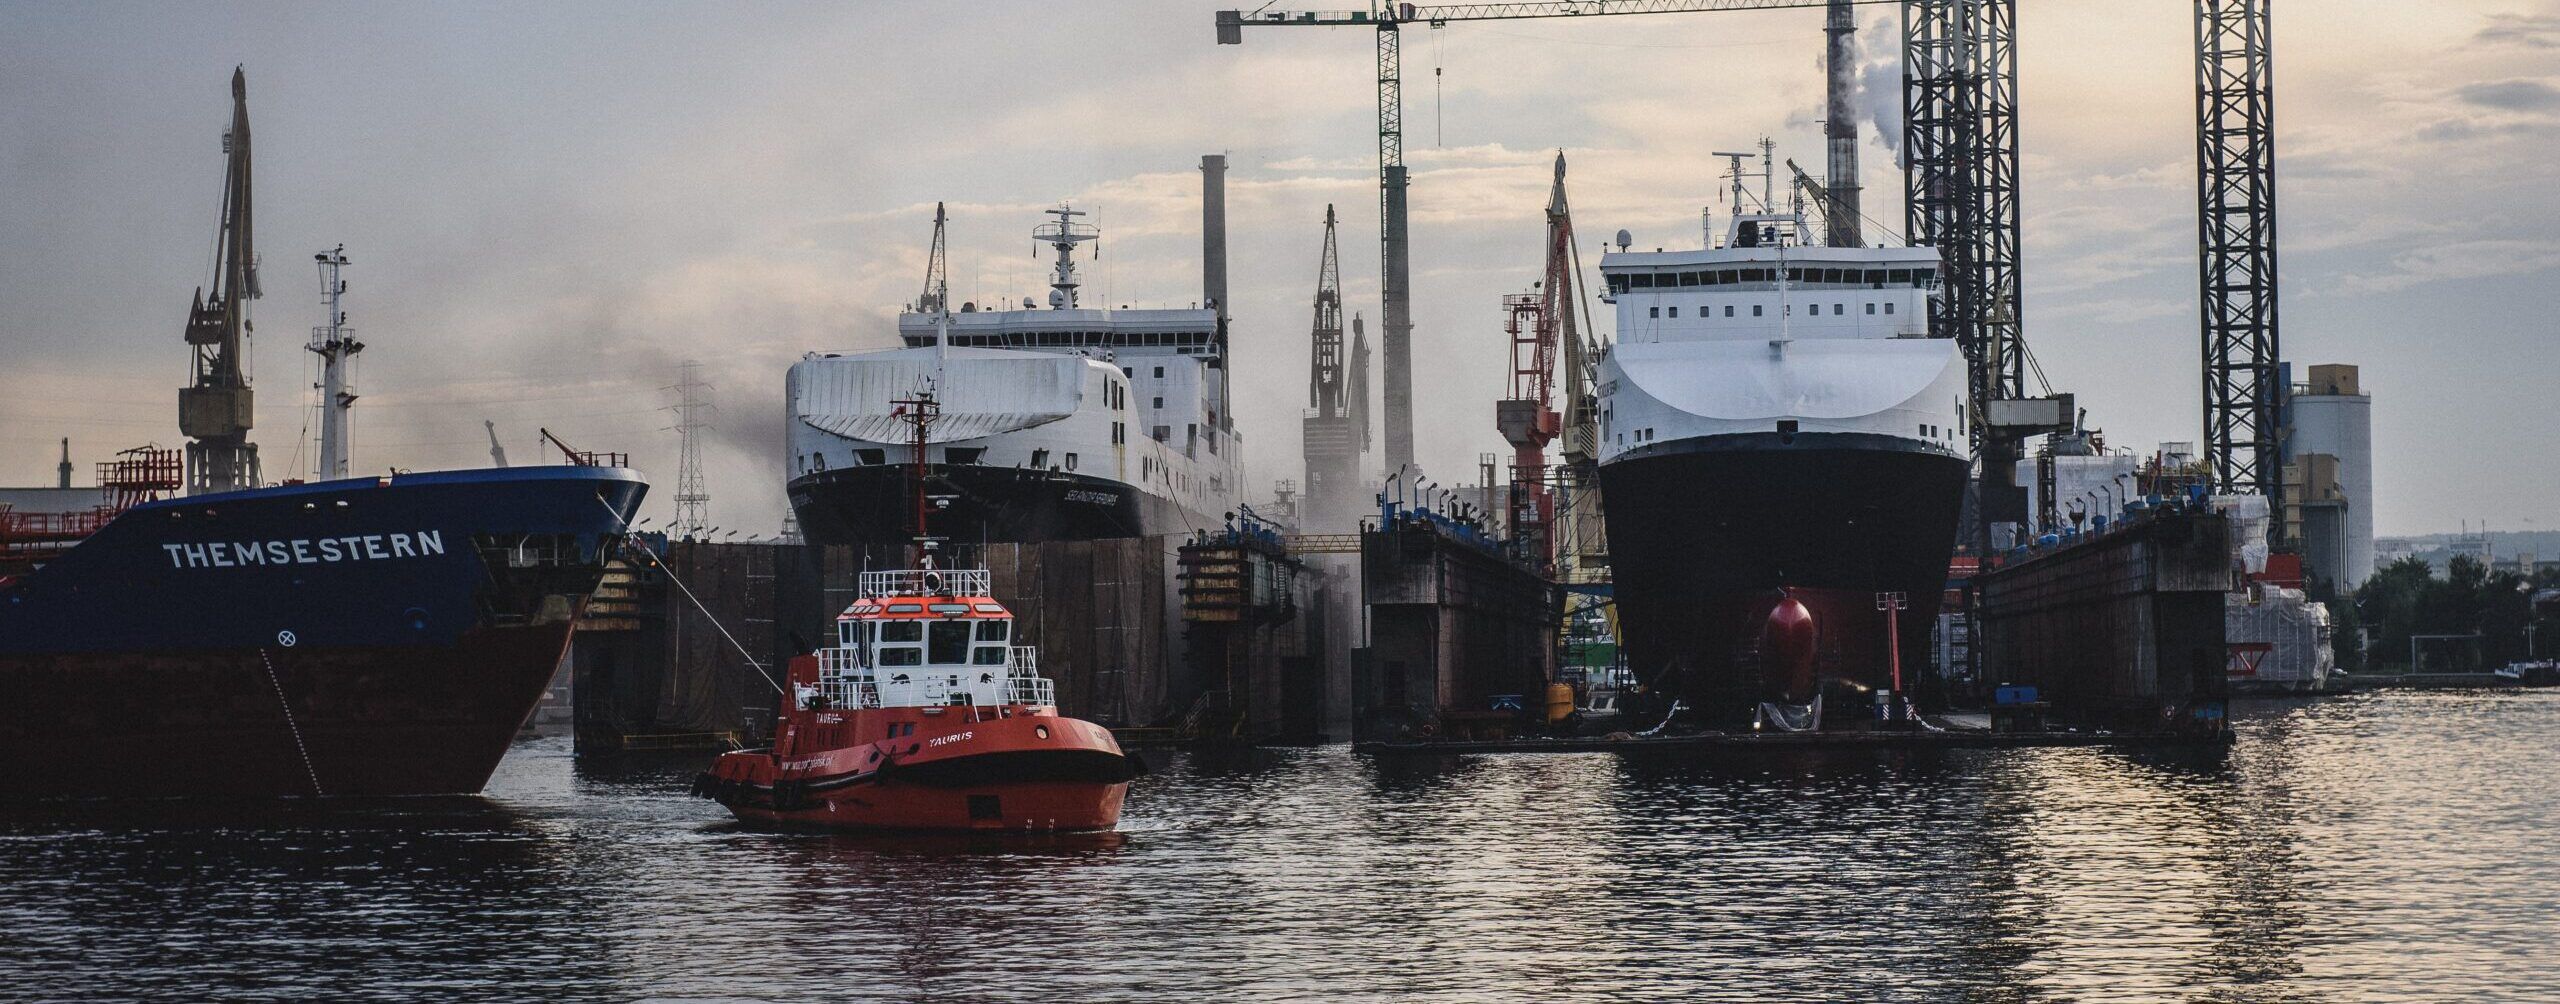 Optimising production planning and processes at shipyards